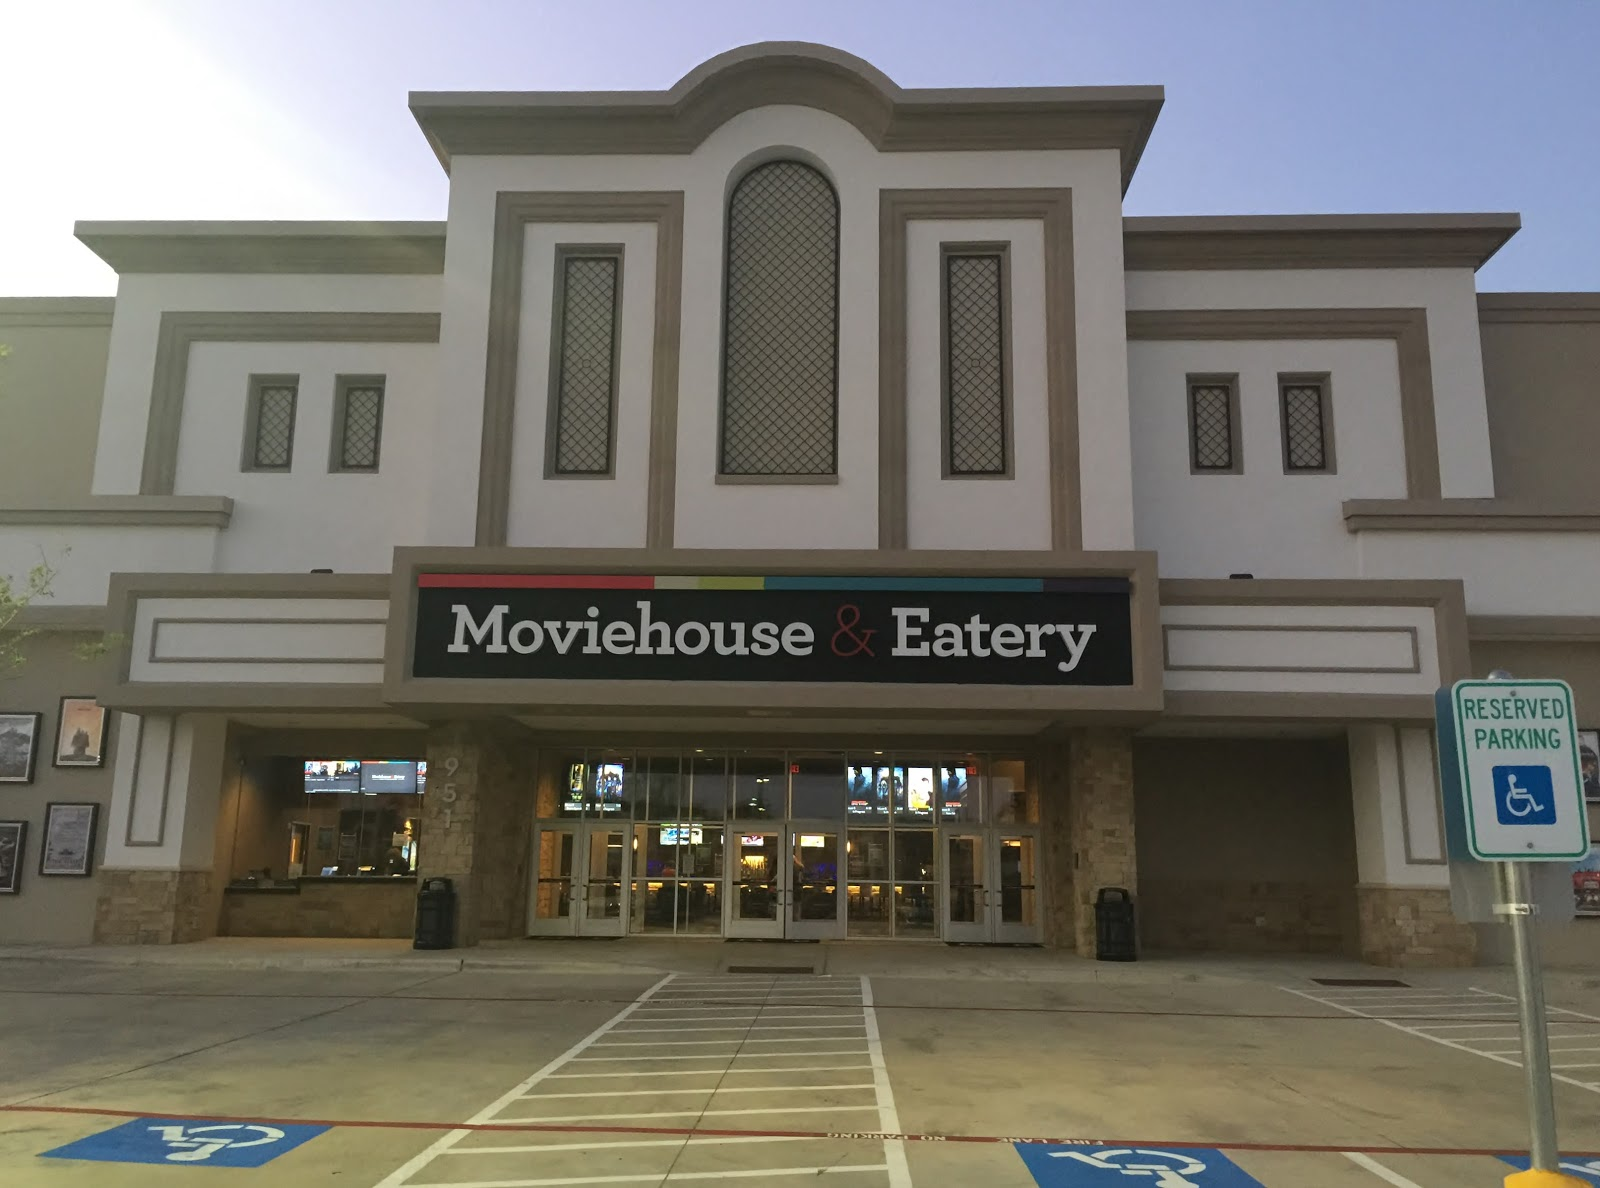 Moviehouse and Eatery Flower Mound TX